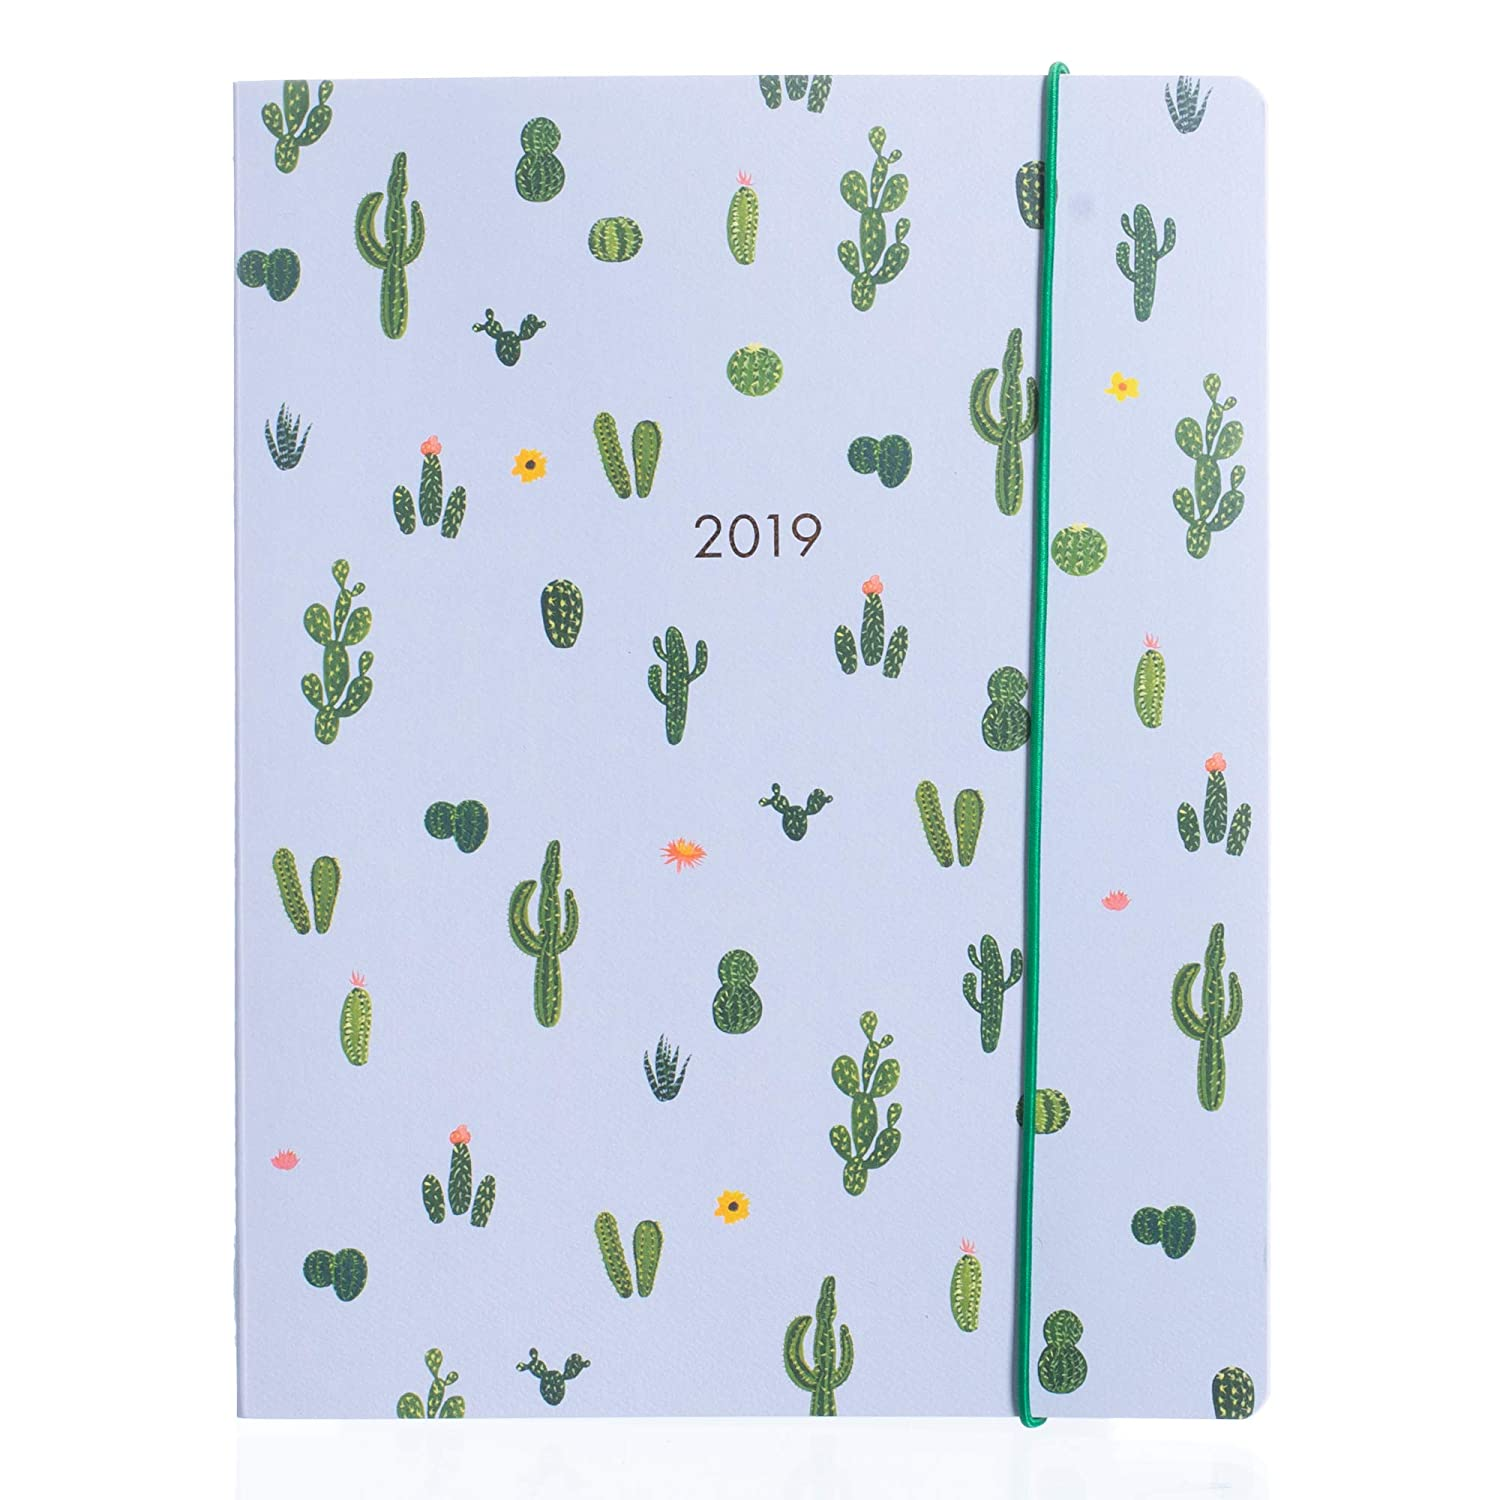 Cactus 2019 Planner, Architecture | Design by Waste Not Paper